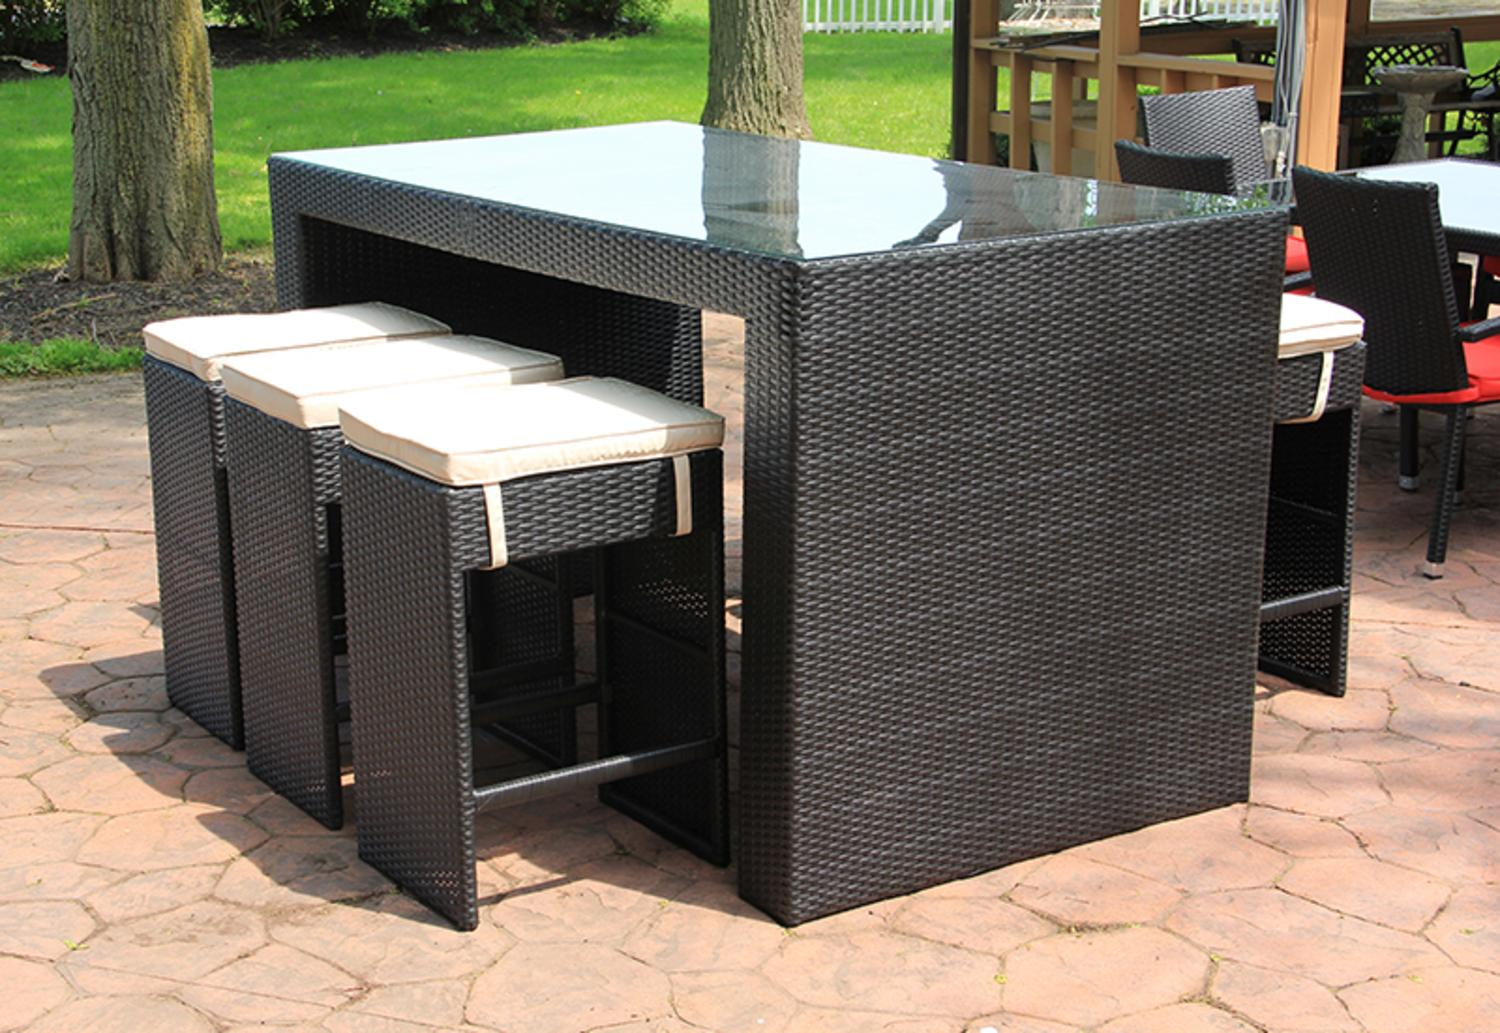 Click here to buy 7-Piece Black Resin Wicker Outdoor Furniture Bar Dining Room Set Red Cushions by CC Outdoor Living.